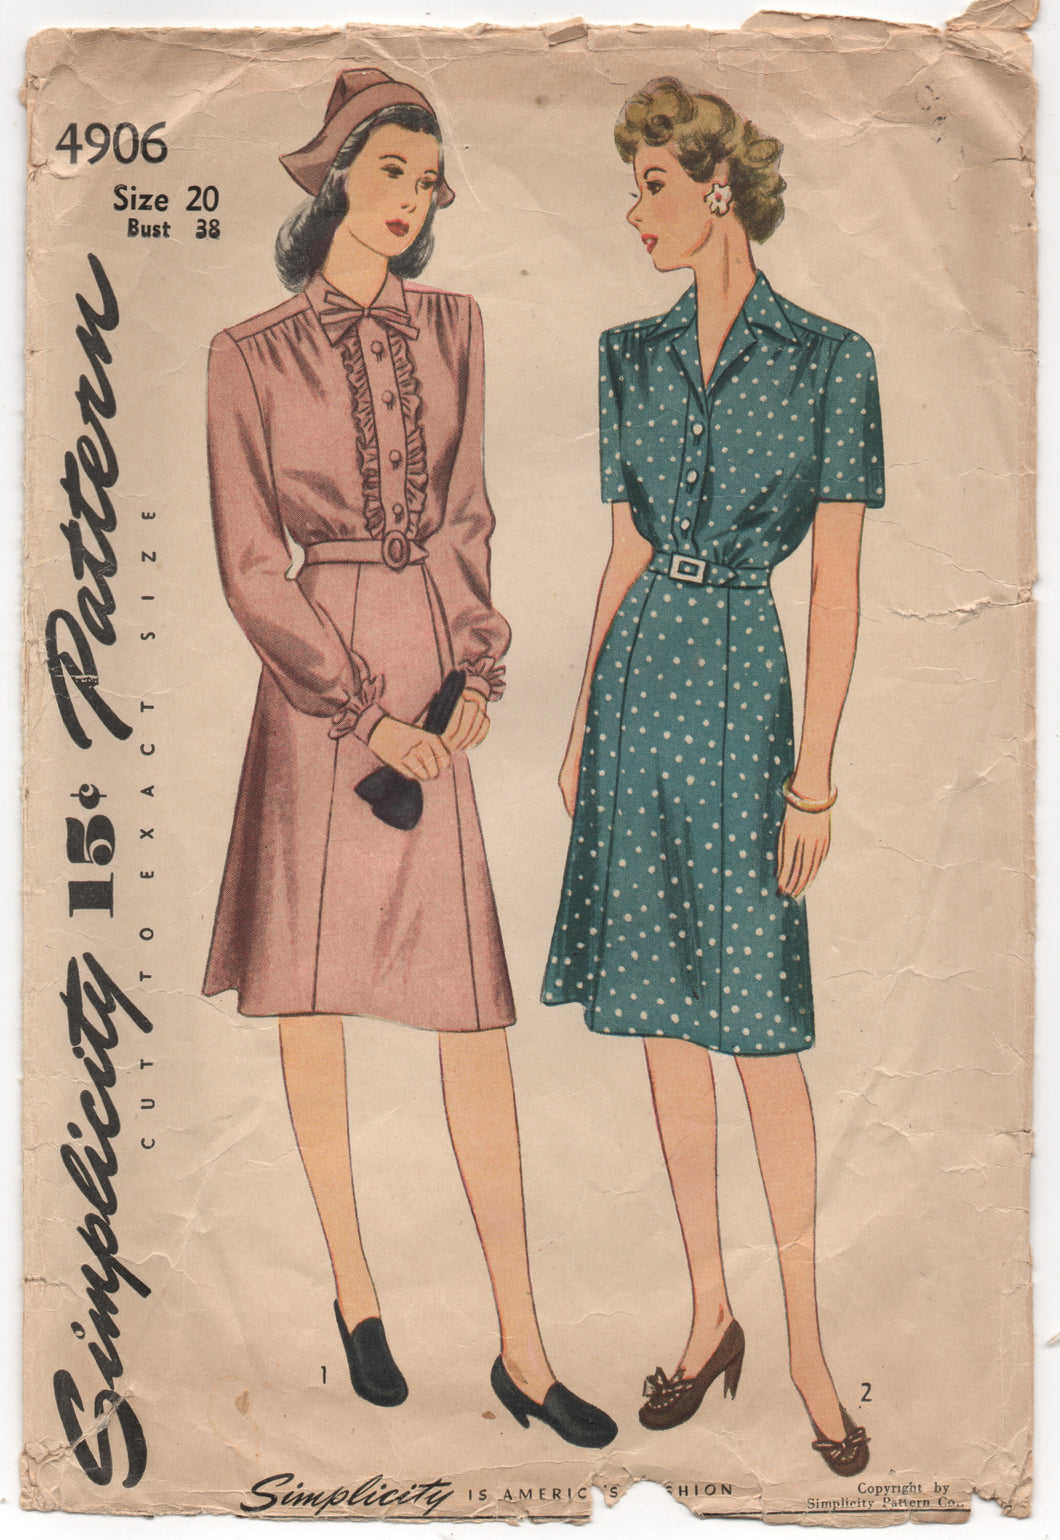 "1940's Simplicity One Piece Shirtwaist Dress with Ruffles - Bust 38"" - No. 4906"